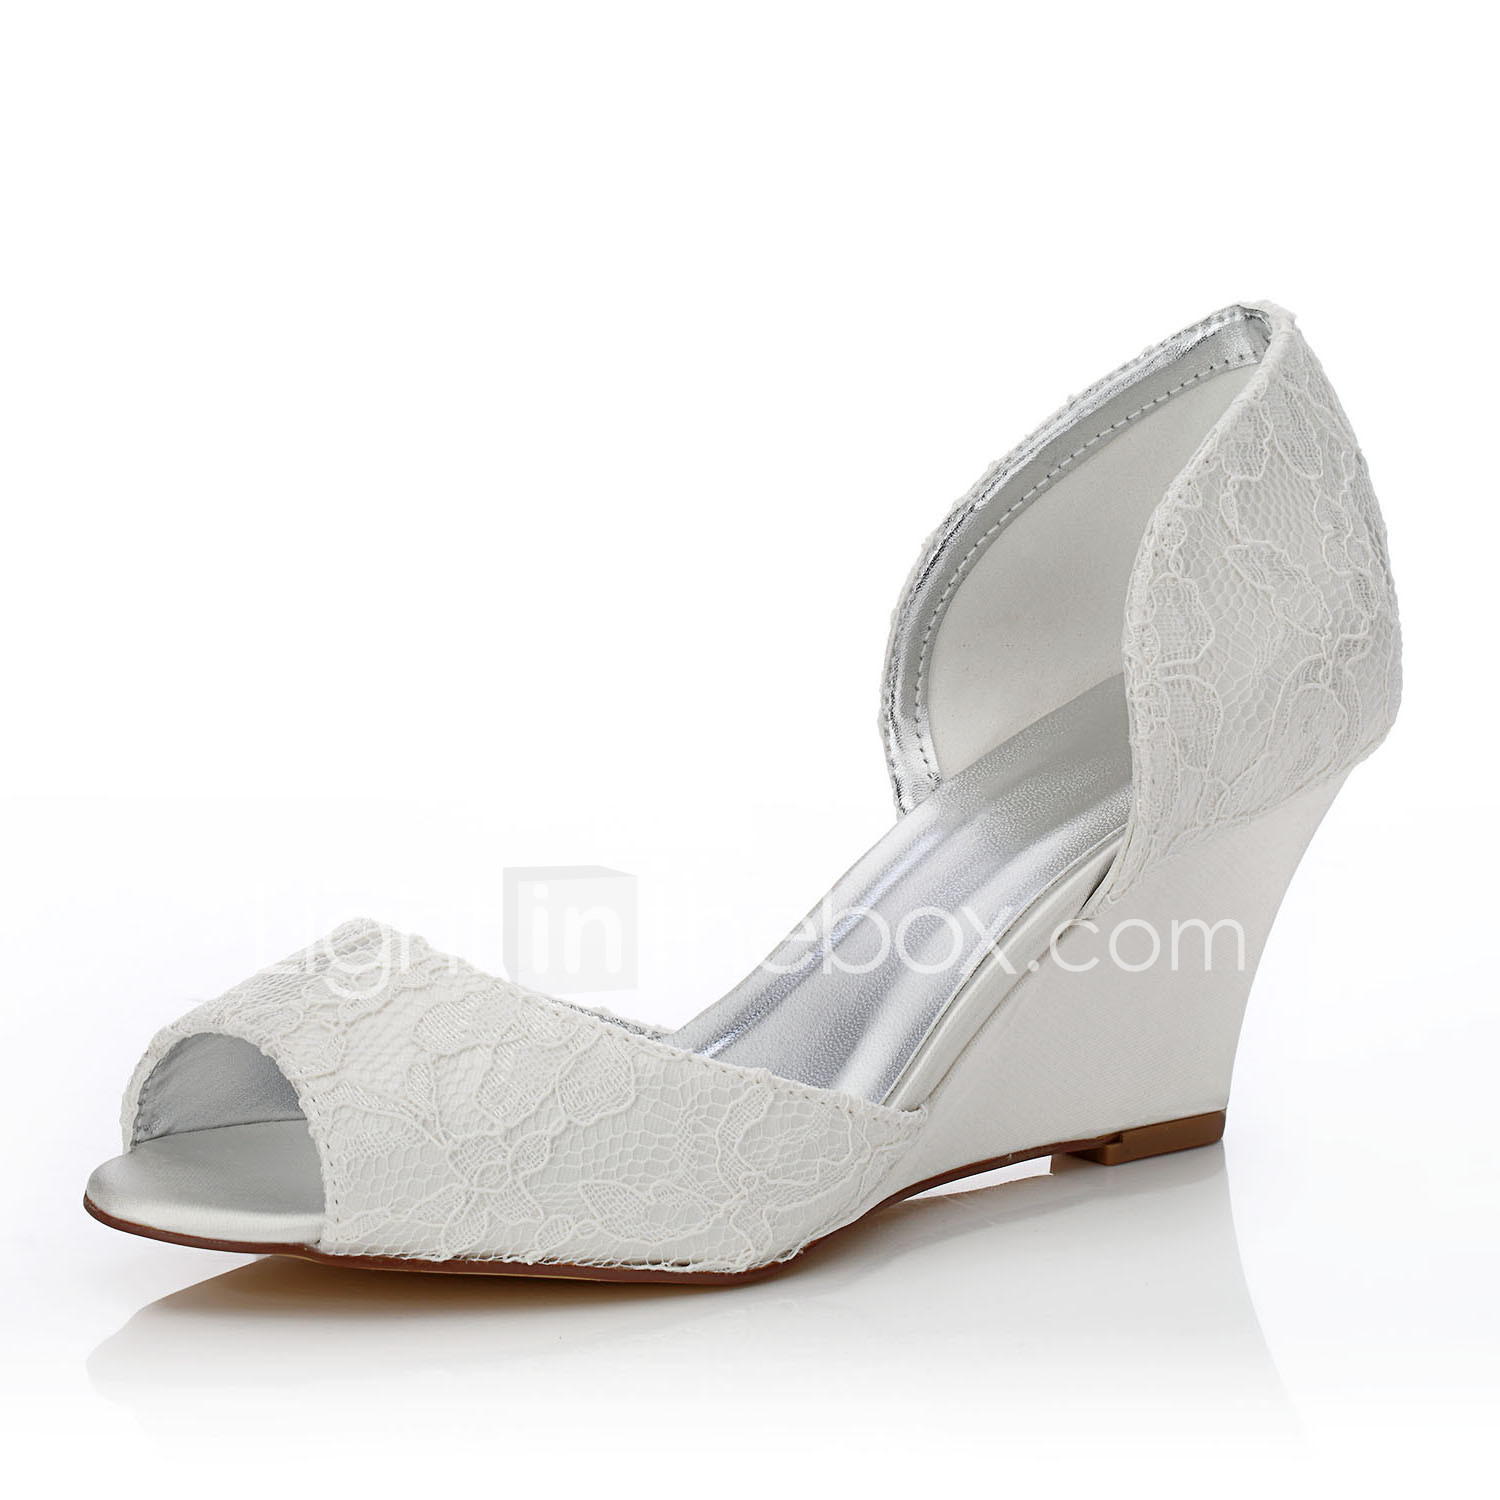 Women S Silk Spring Summer Comfort Dyeable Shoes Wedding Shoes